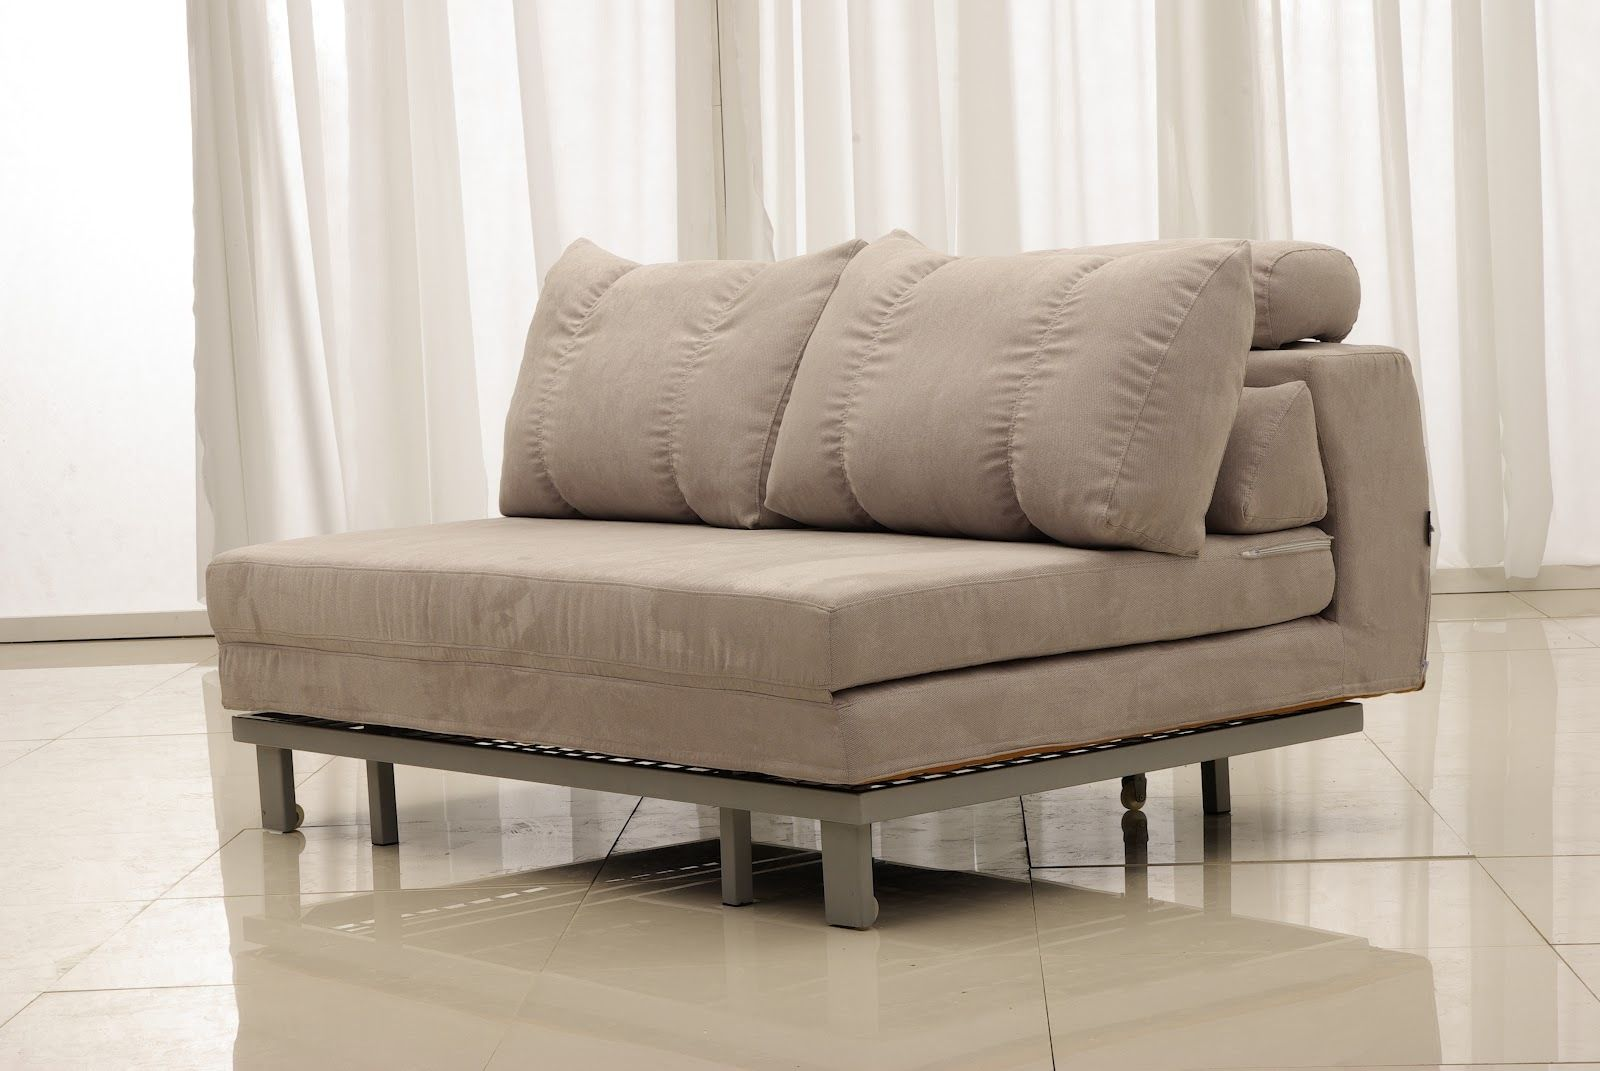 Furniture Awesome Sofa Twin Size Convertible Chair Bed Comfortable